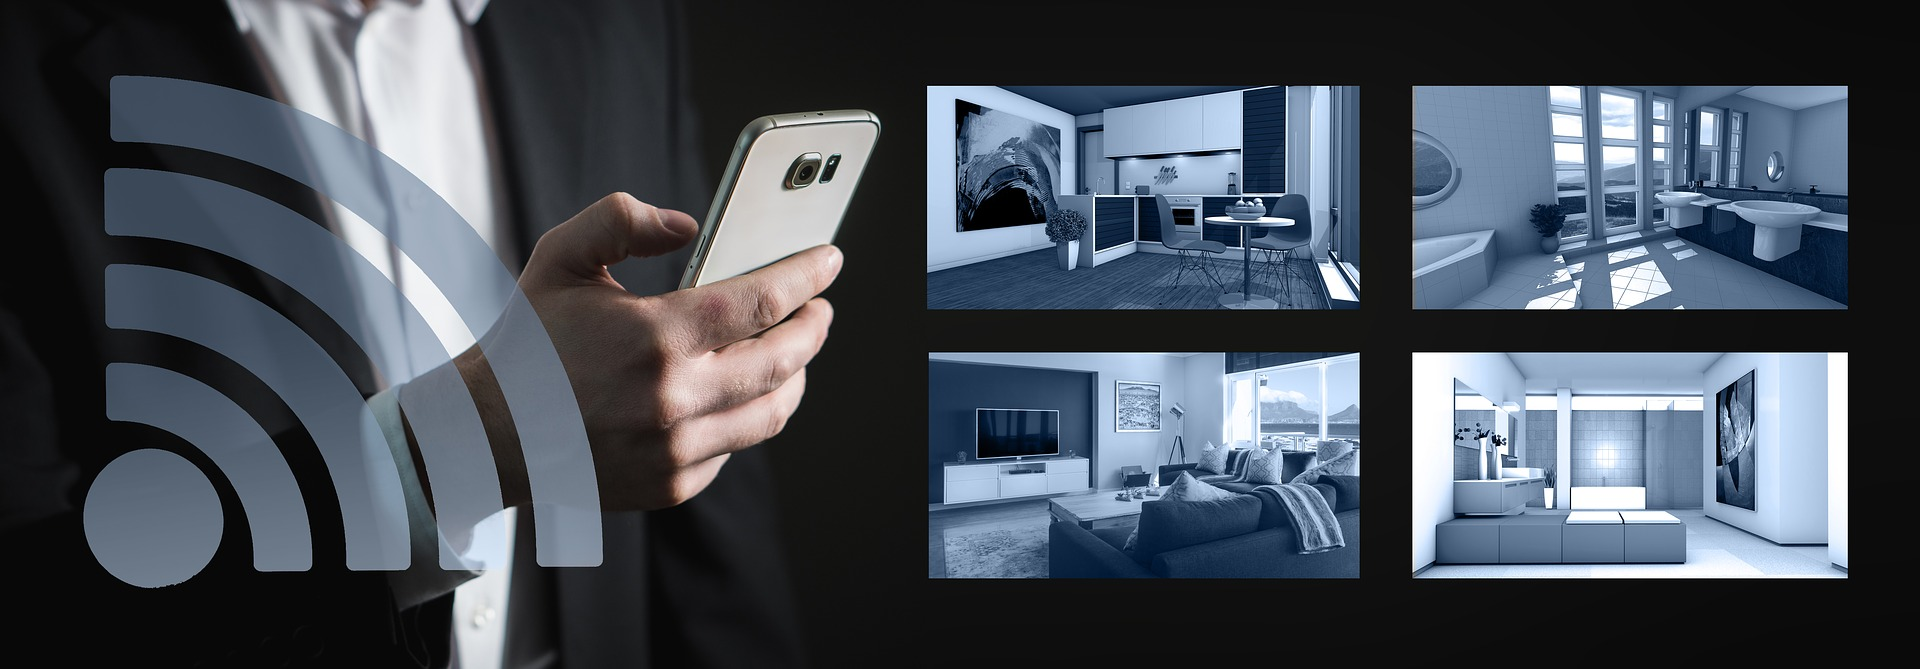 Hard Wired or Wireless Home Security System: Which is Better?